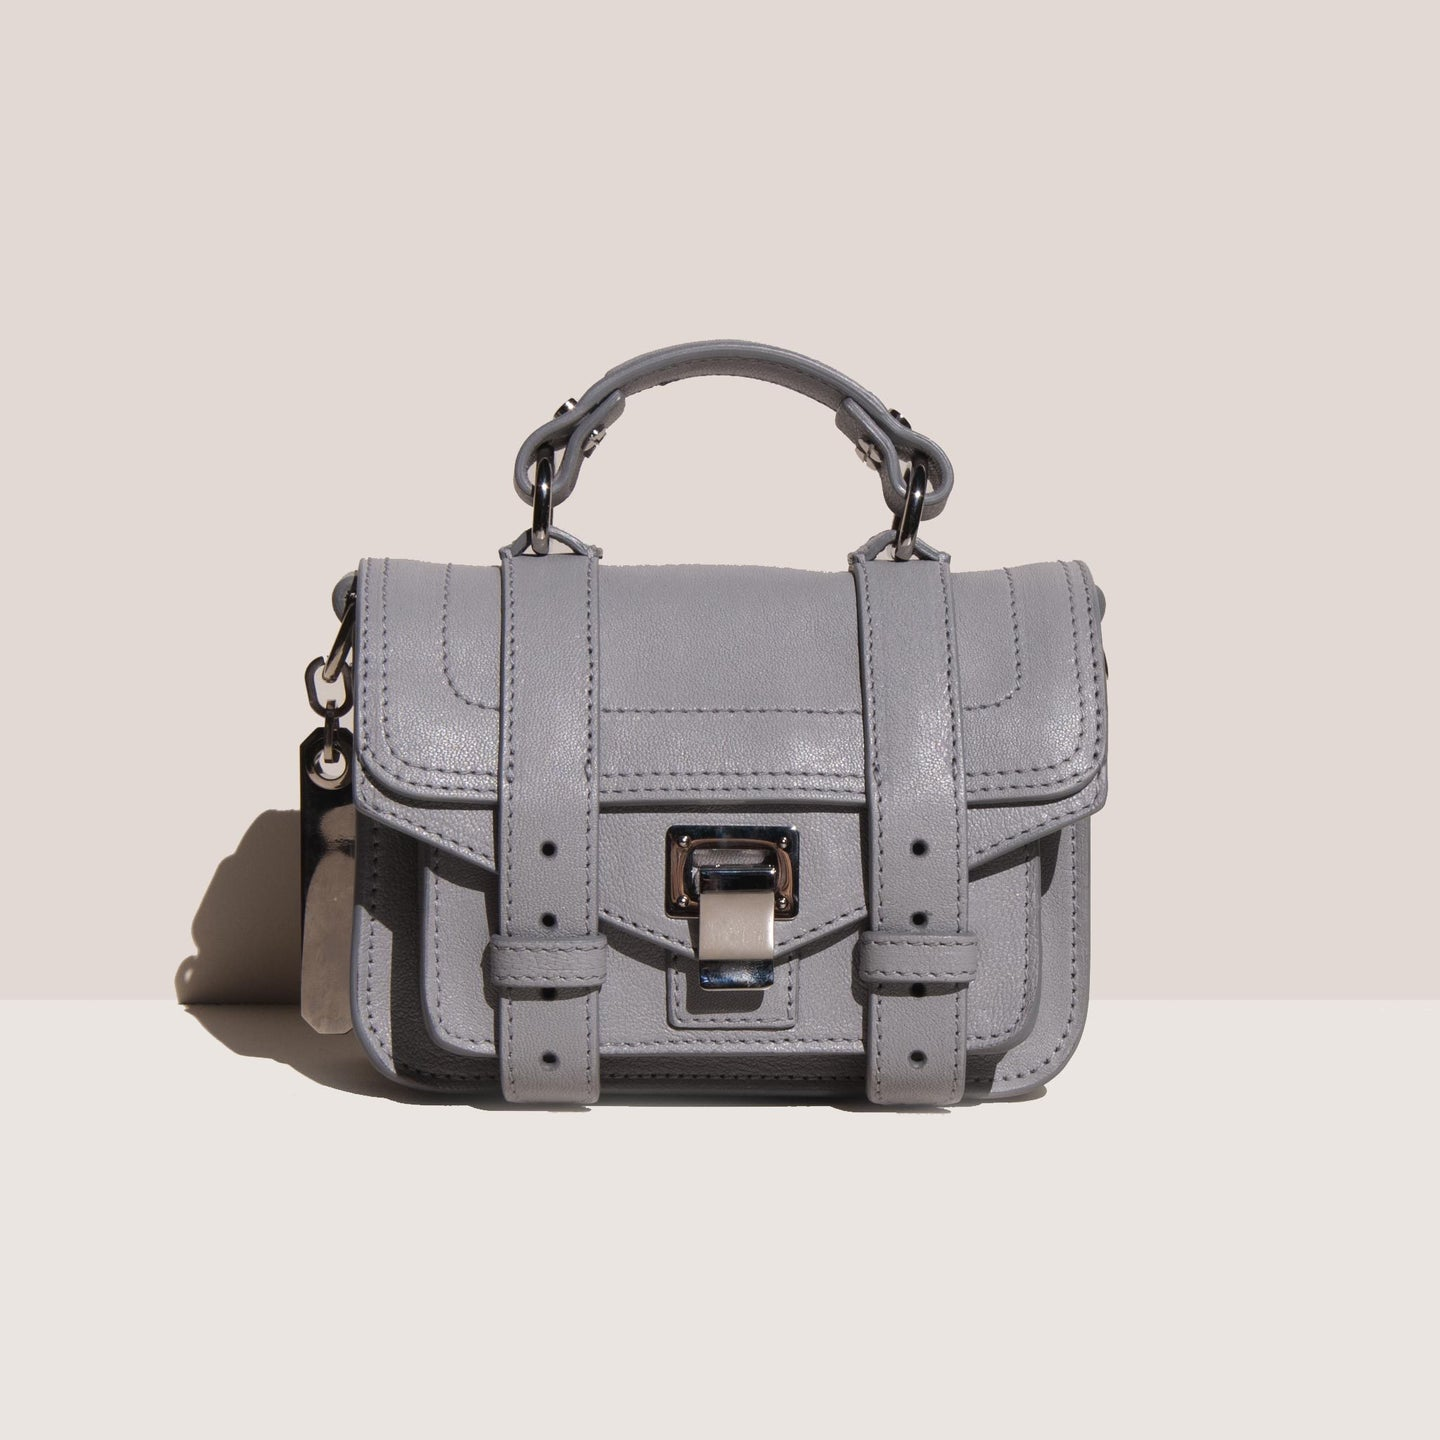 Proenza Schouler - PS1 Micro Bag, front view, available at LCD.